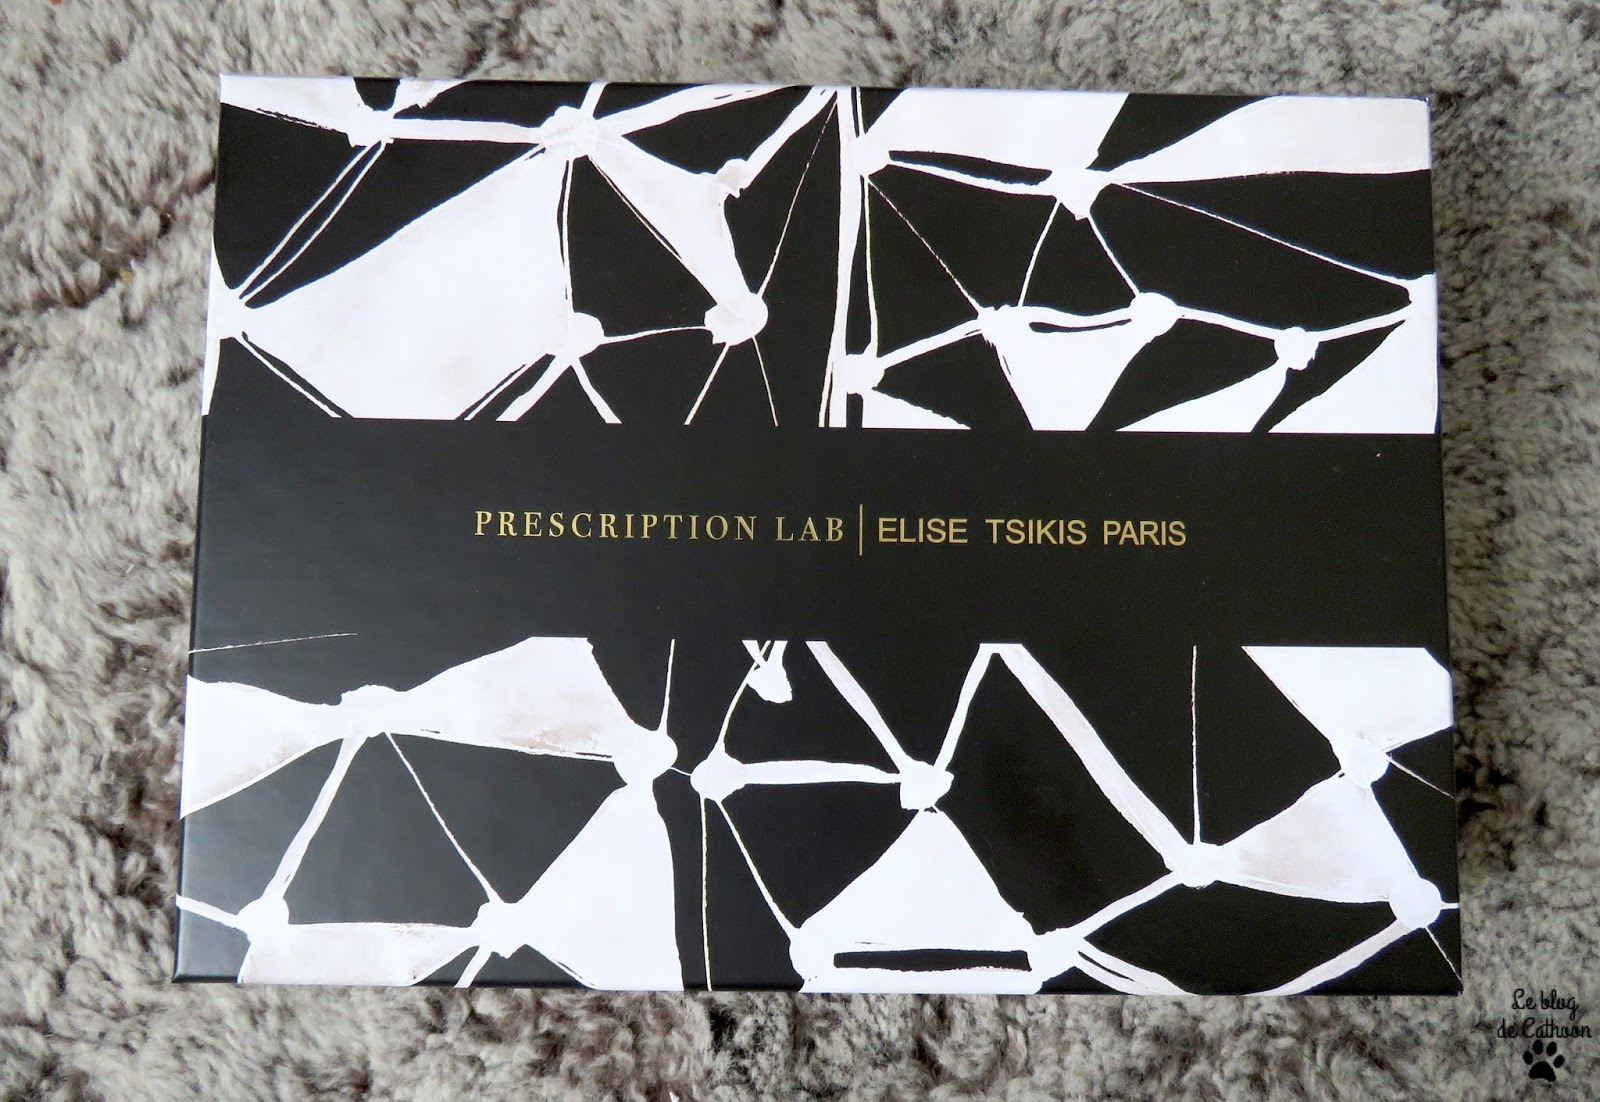 Box Prescription Lab de Novembre 2019